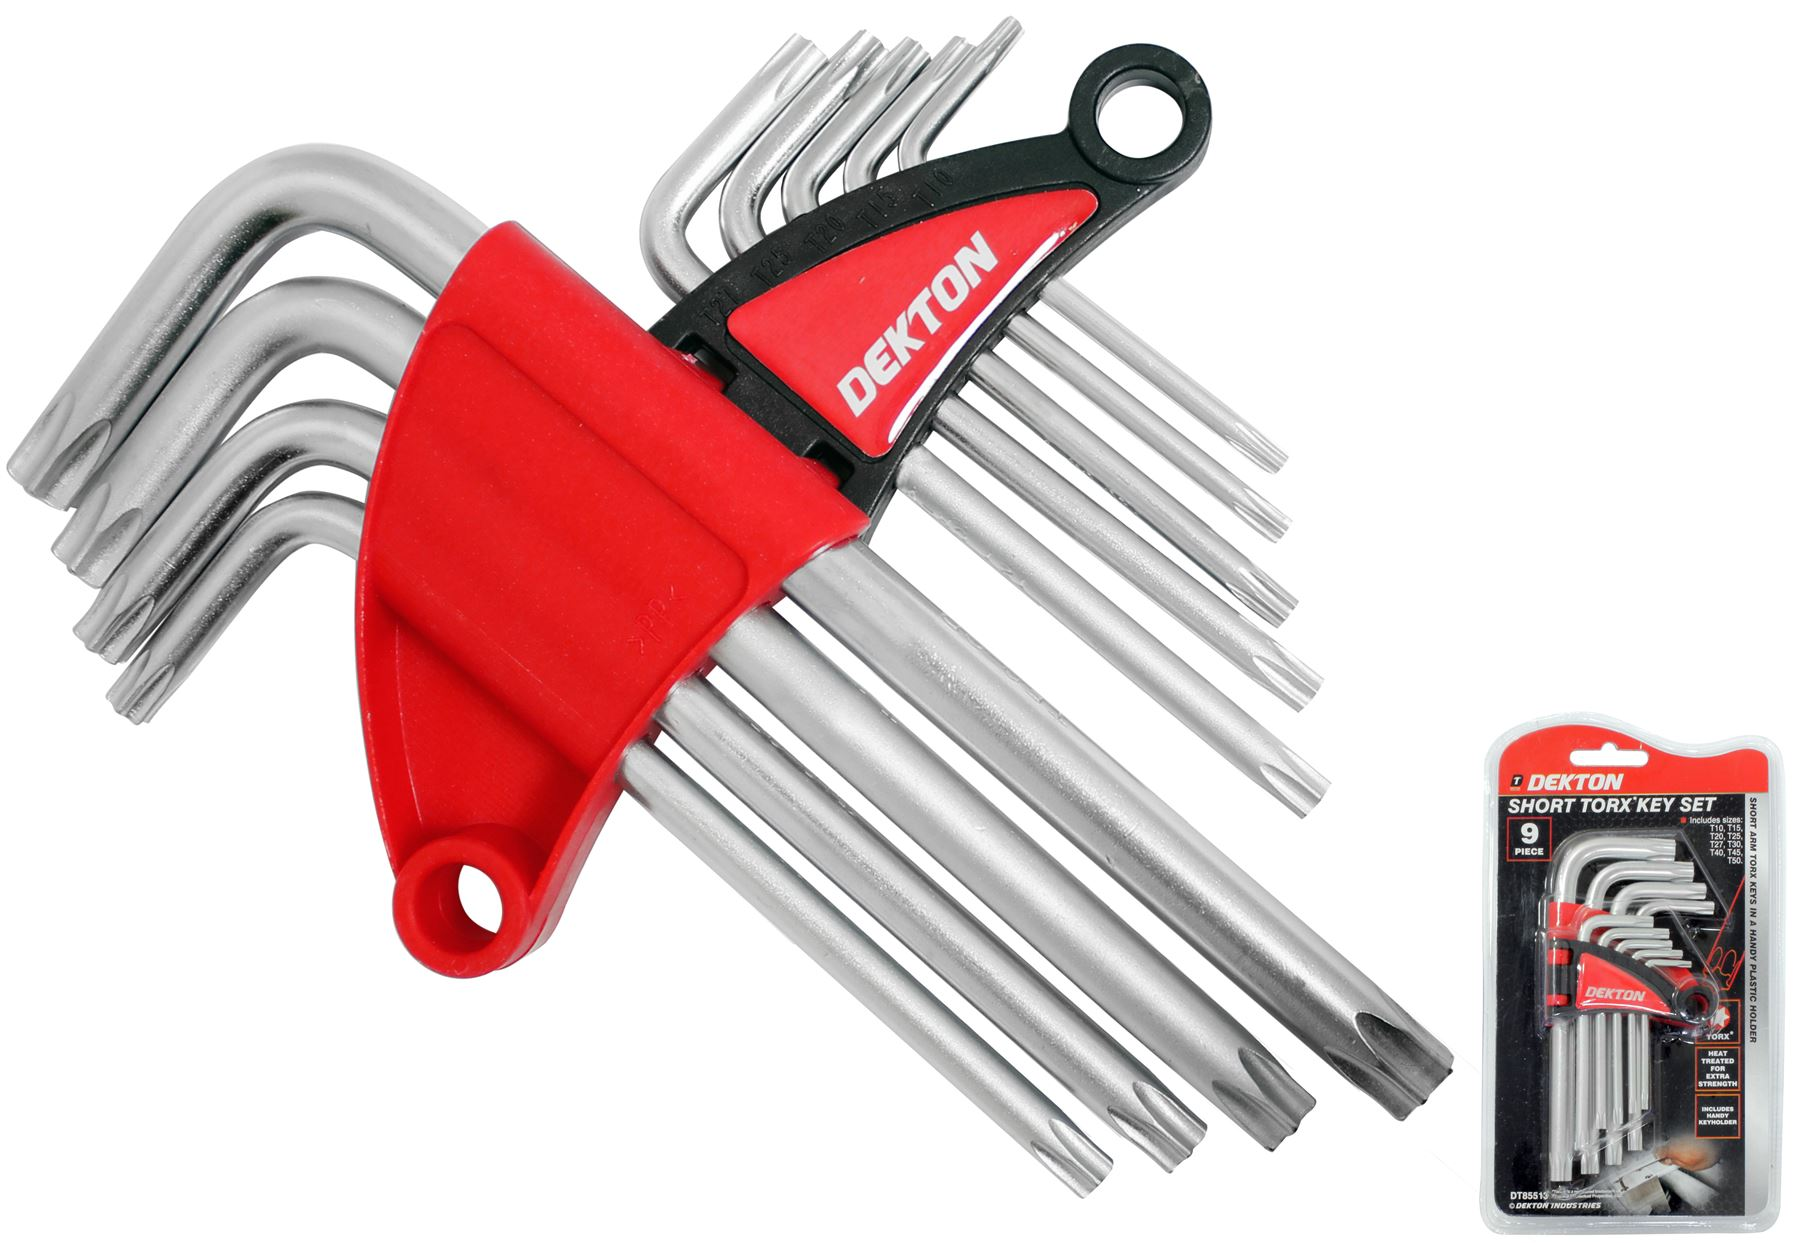 9 Pieces Security Torx Hex Key Wrench Set with Holes T10-T50 Short Arm